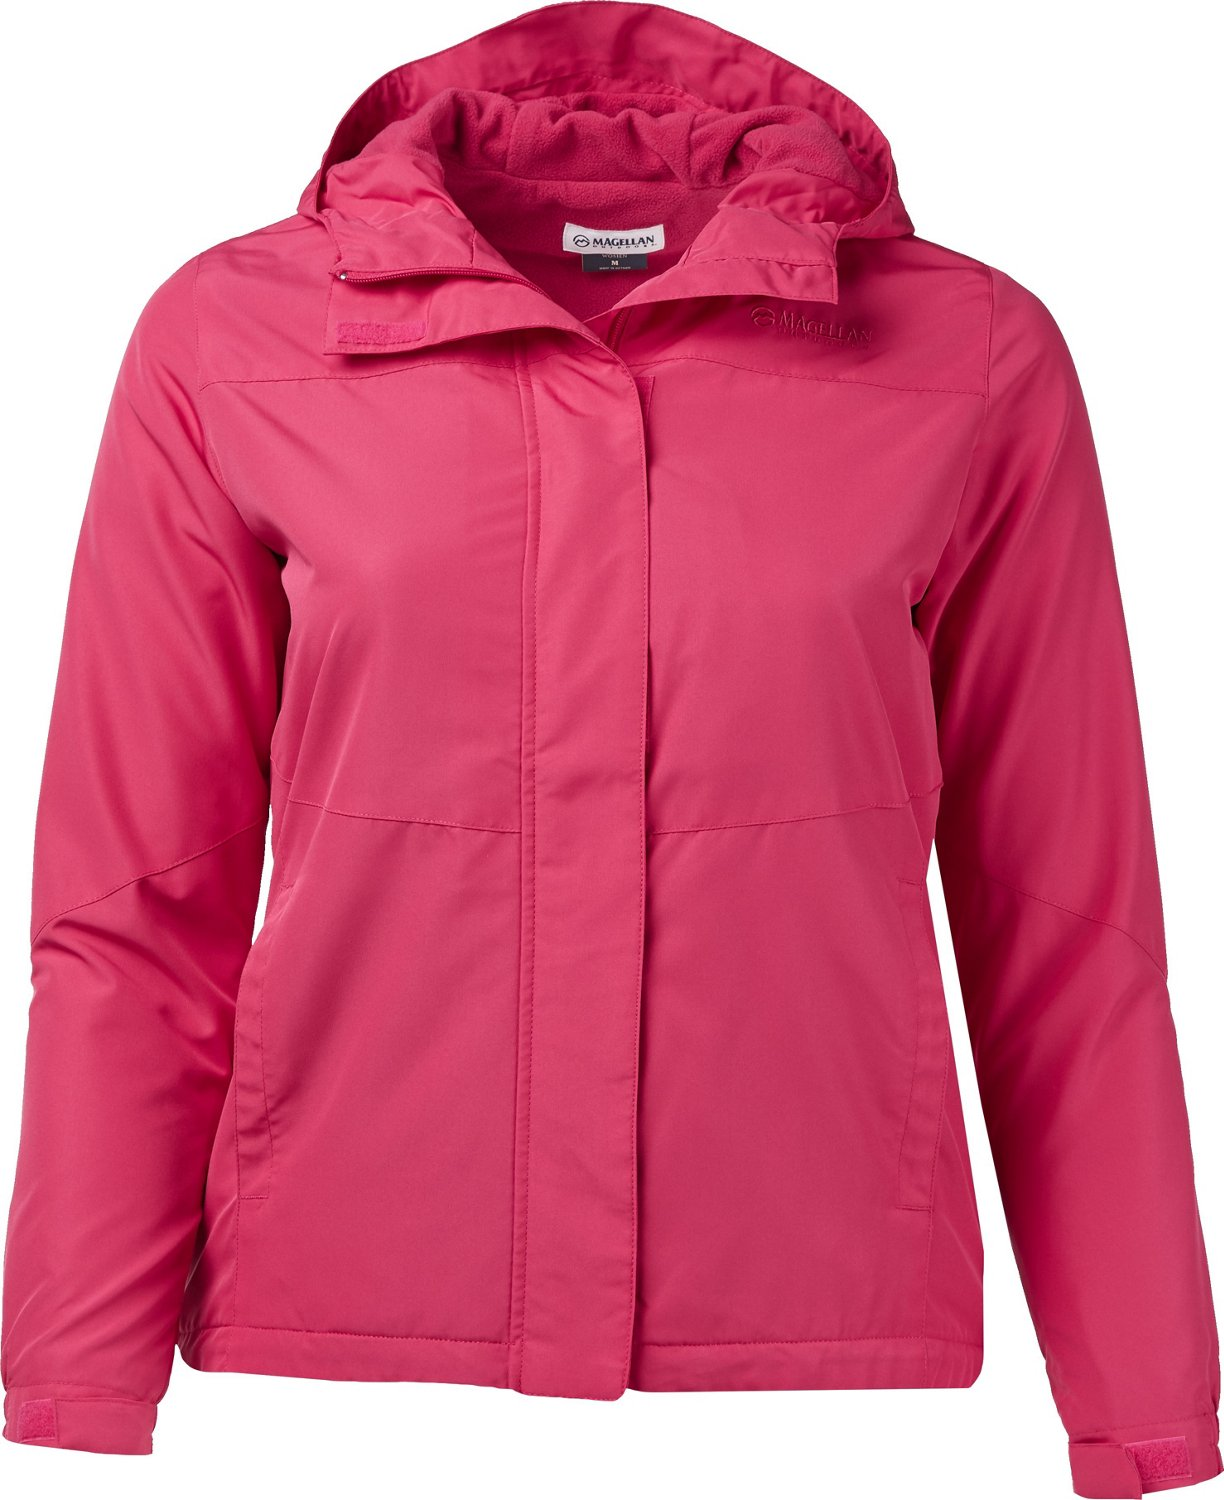 3b1c1484f9 Display product reviews for Magellan Outdoors Women s Slider Jacket